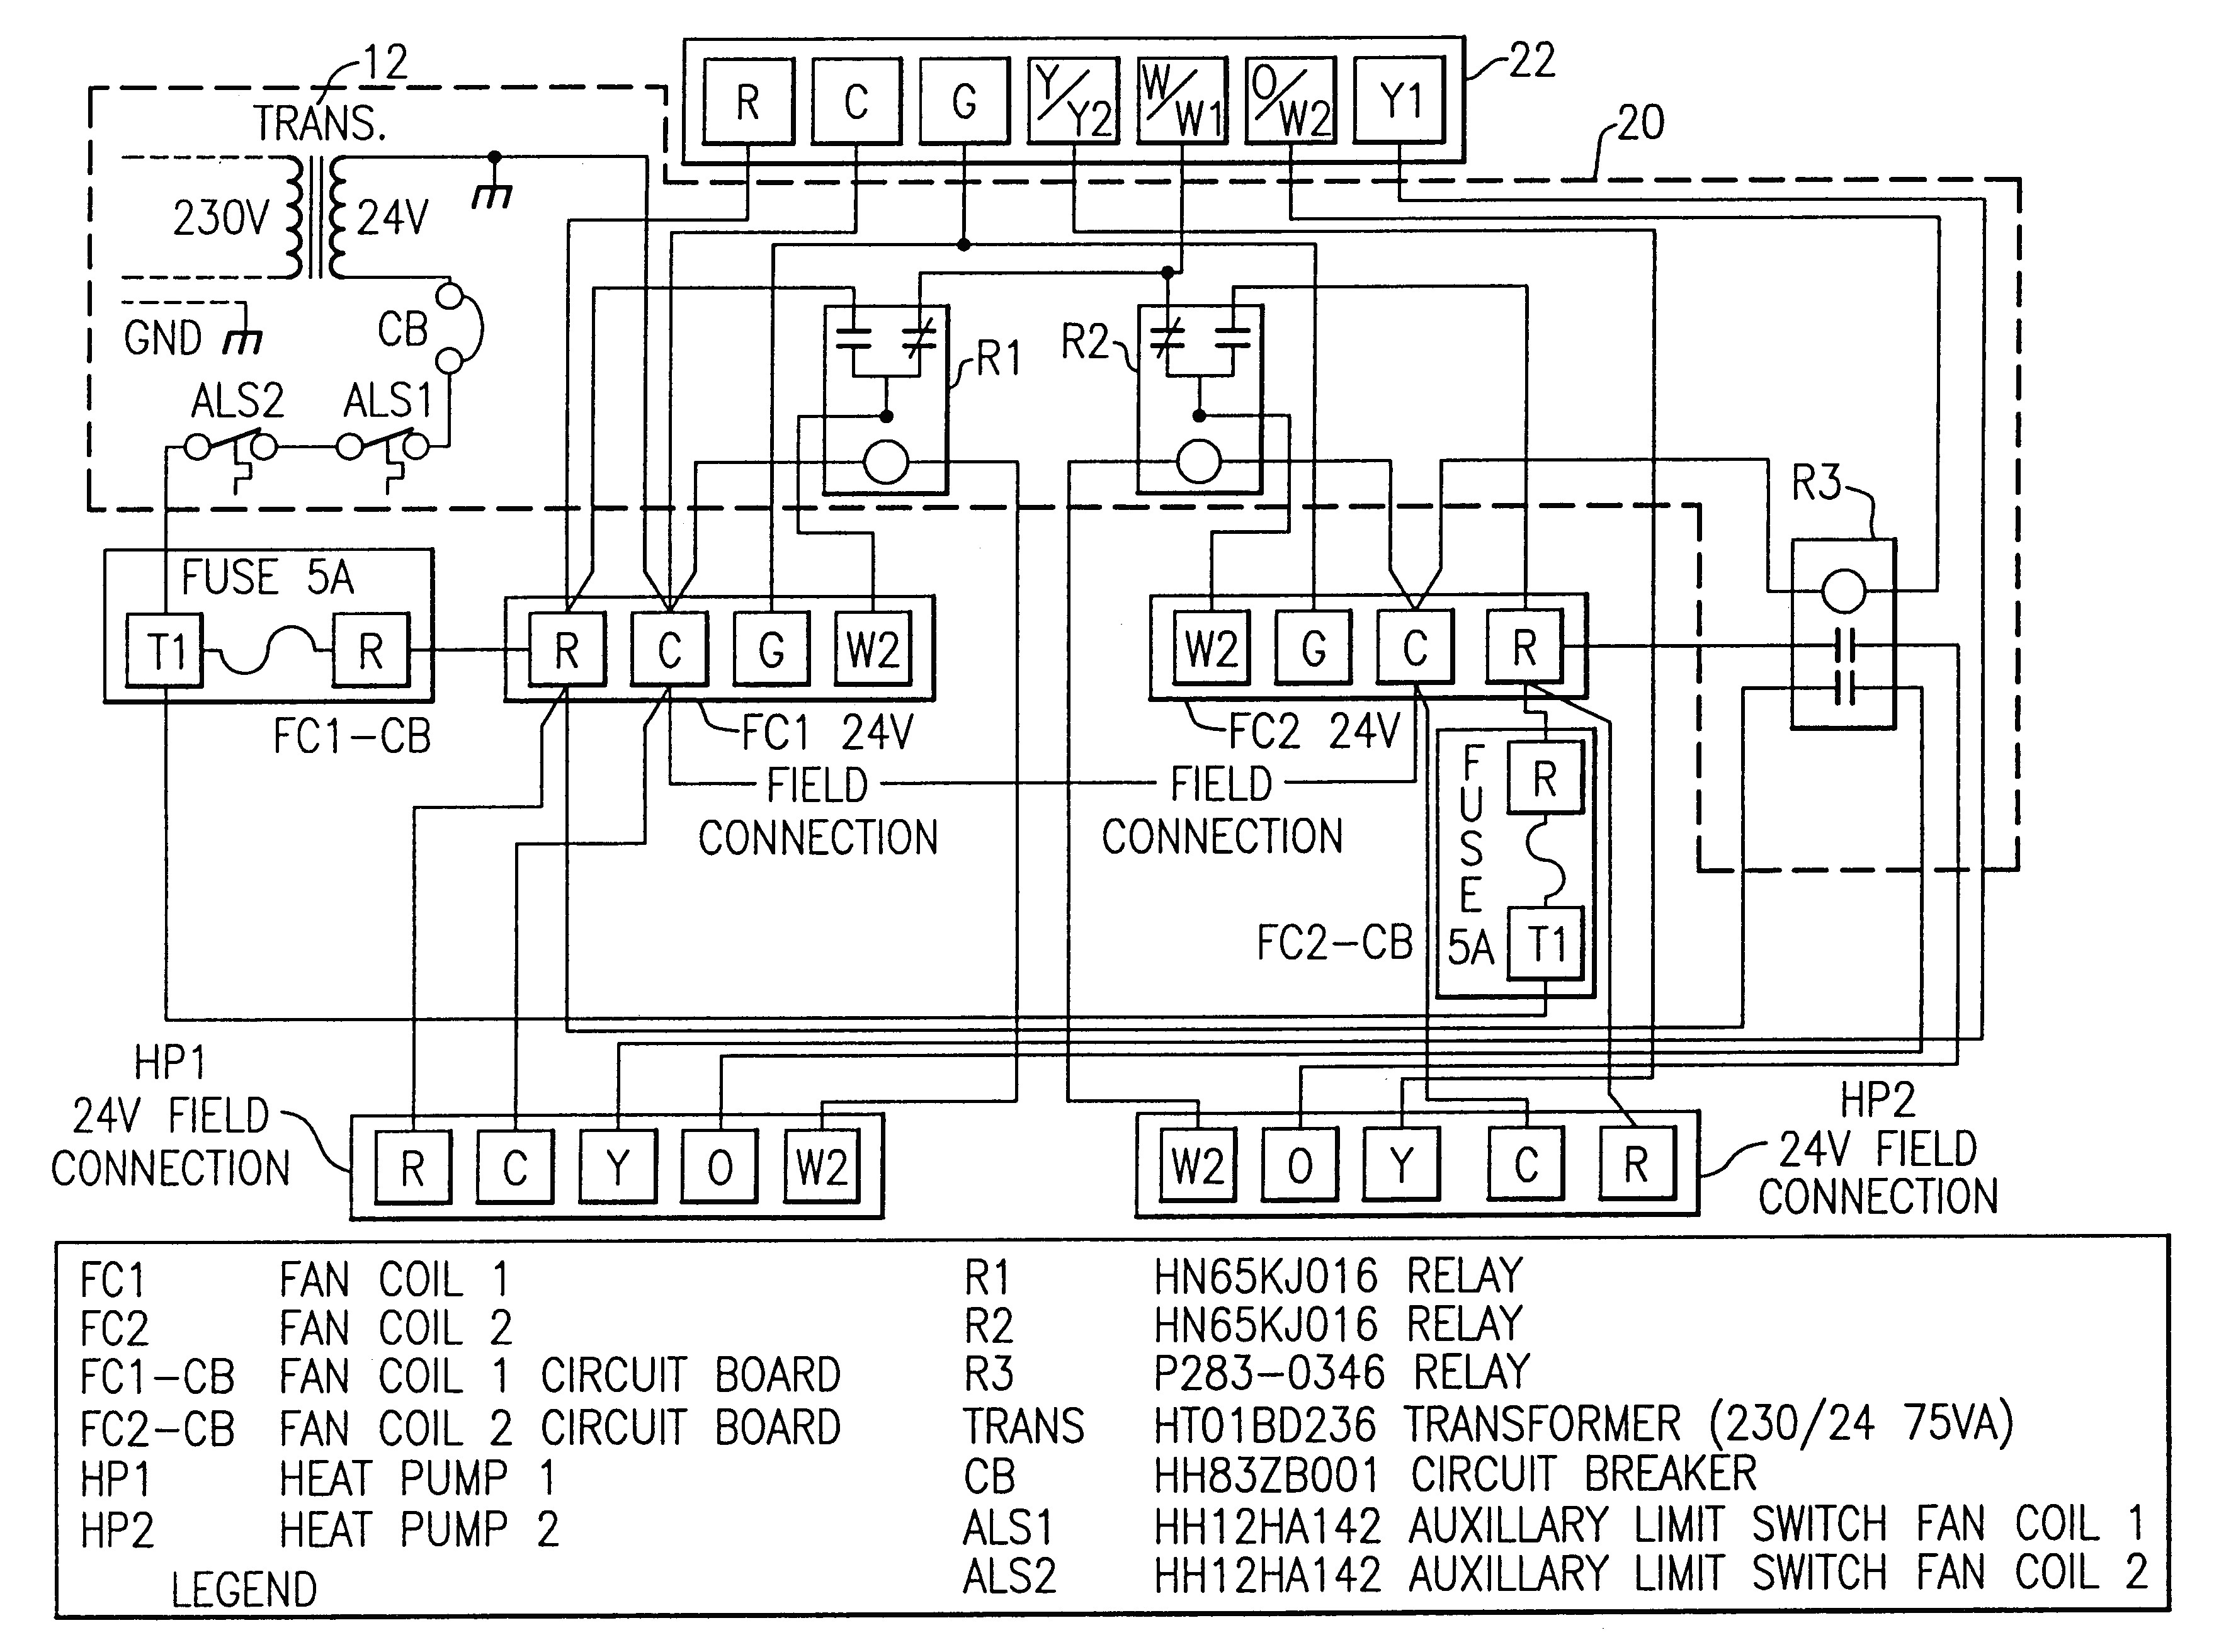 alpine pkg rse2 wiring diagram Collection-carrier air conditioner wiring diagram Download Carrier Air Conditioner Wiring Diagram For Programmable Thermostat 19 6-k